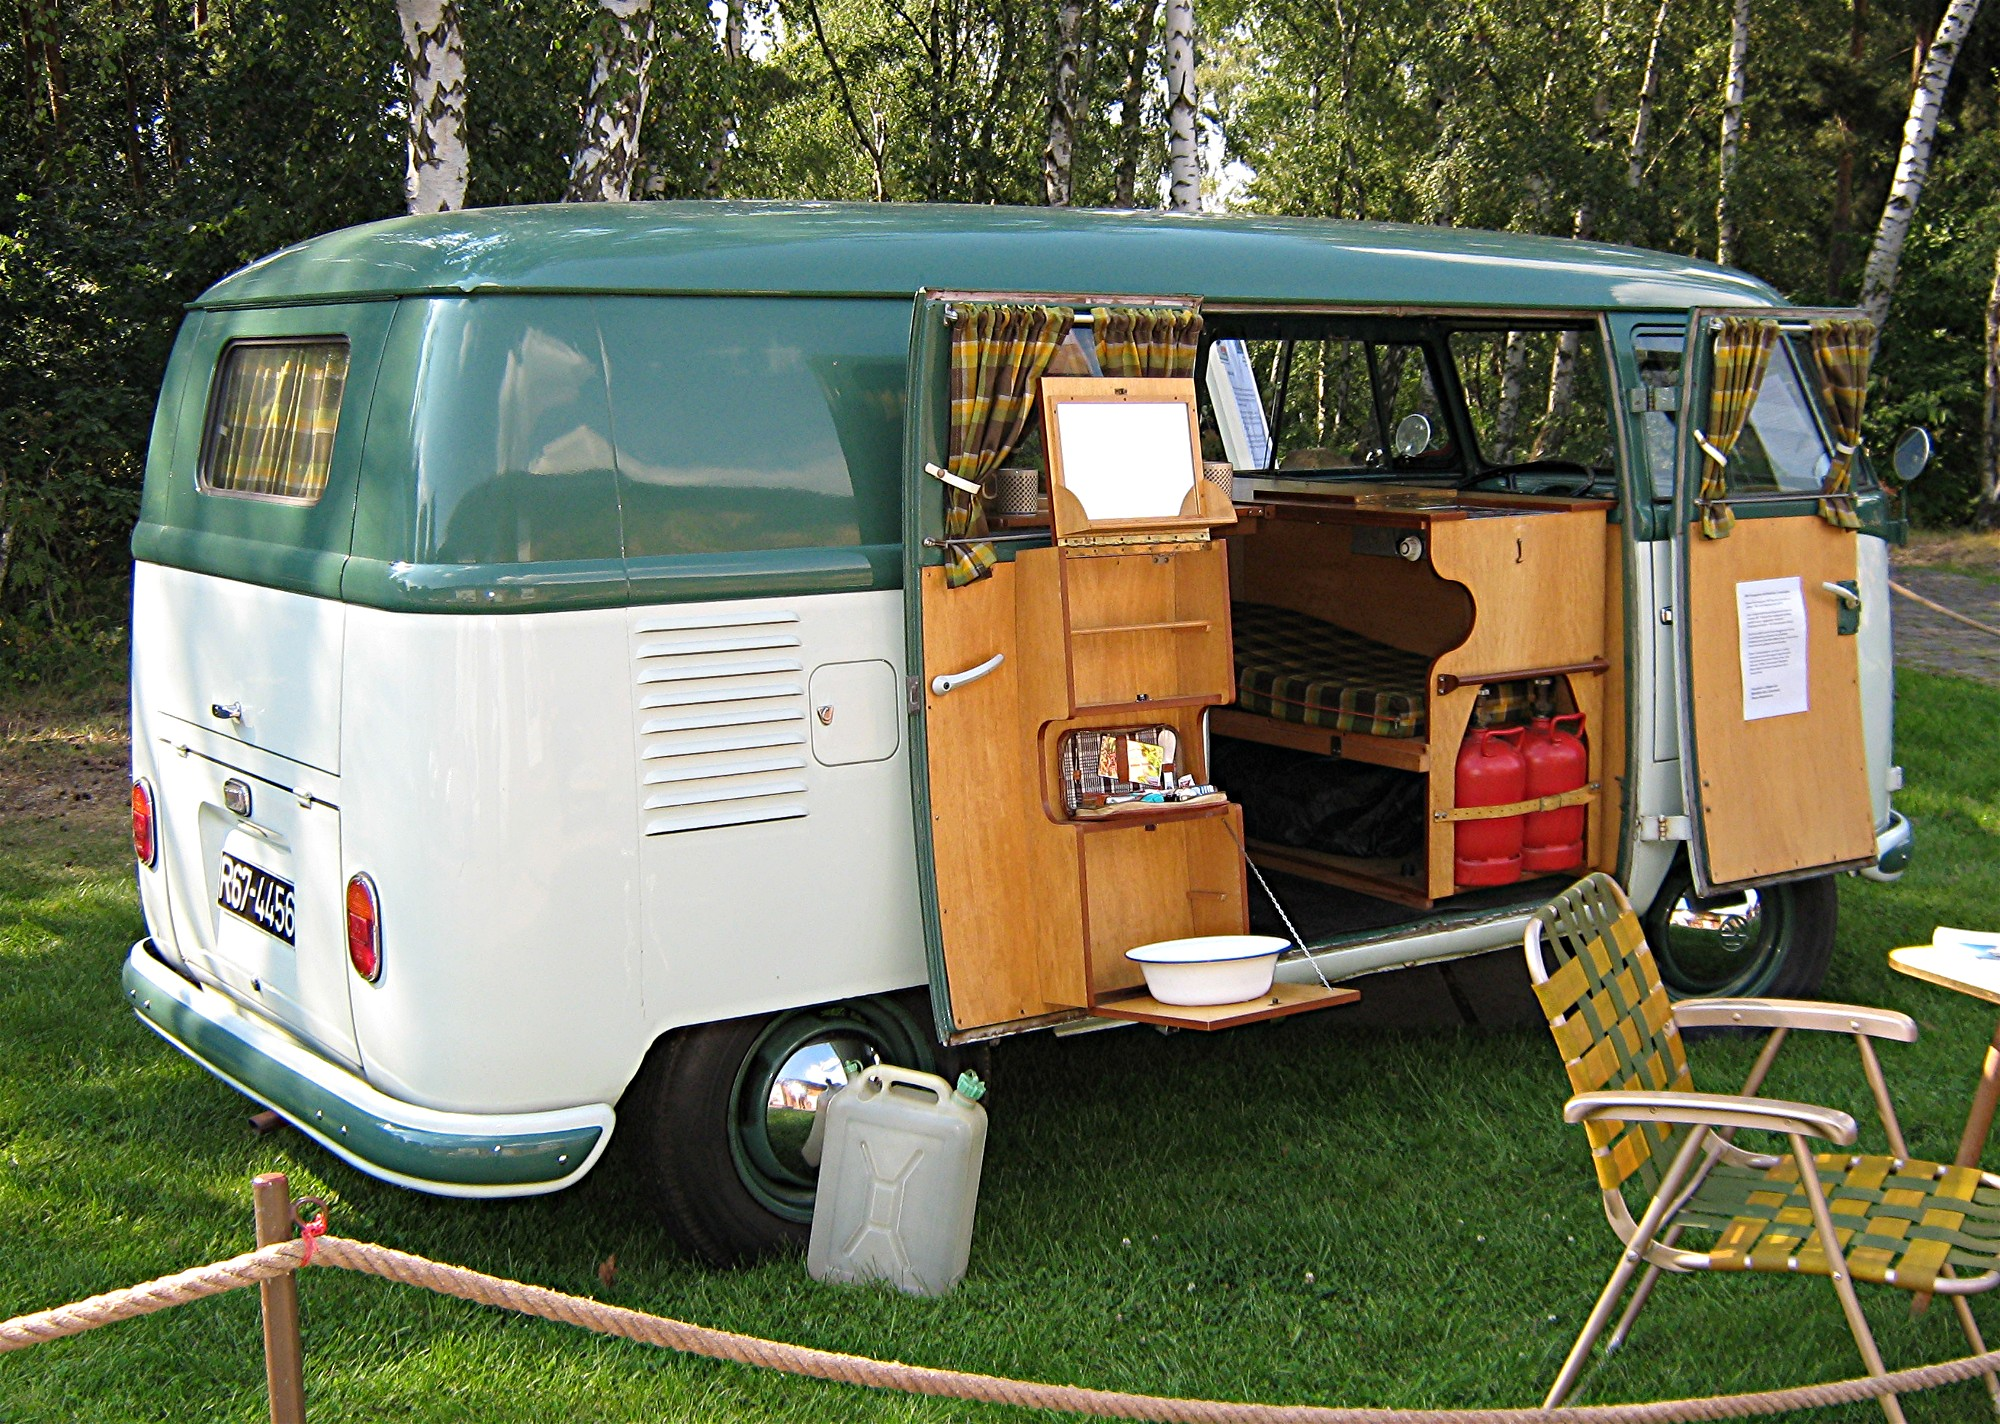 What Does Your Car Camping Vehicle Say About You?